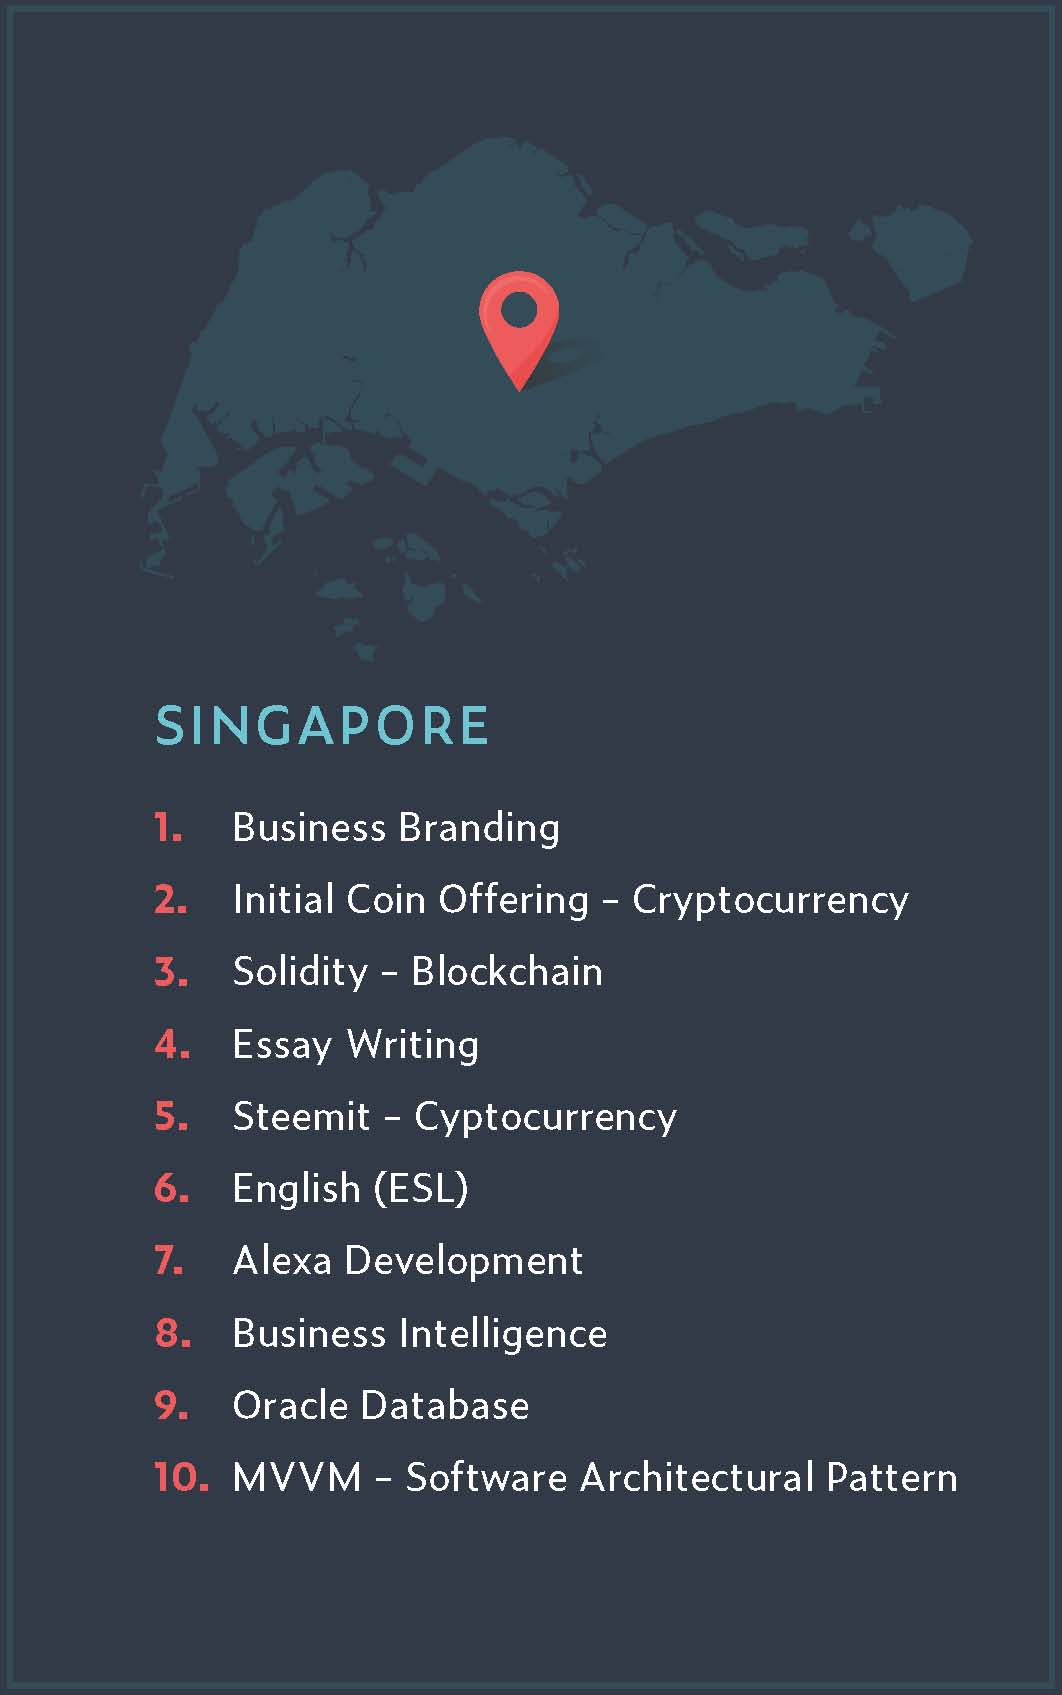 Udemy_Top_10_Skills_Infographic-Singapore